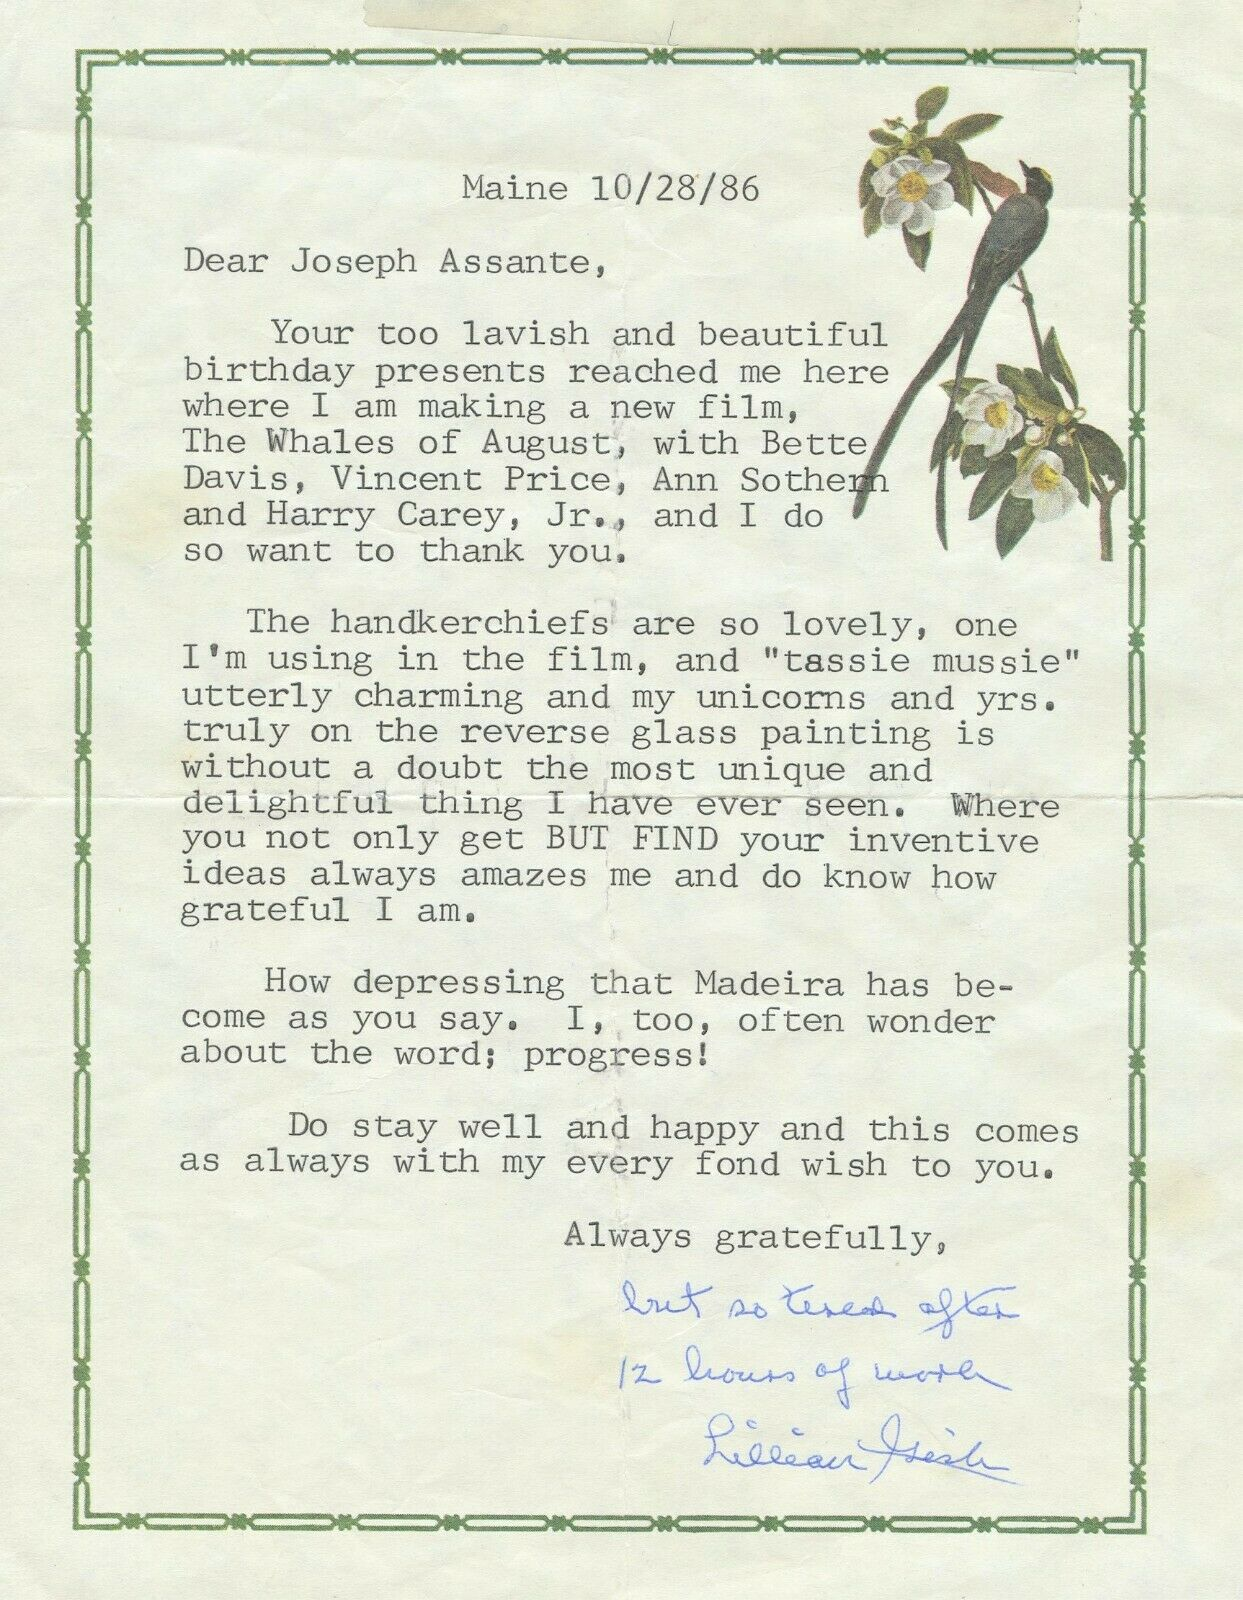 Image 1 - LILLIAN GISH Signed Letter - The Whales of August